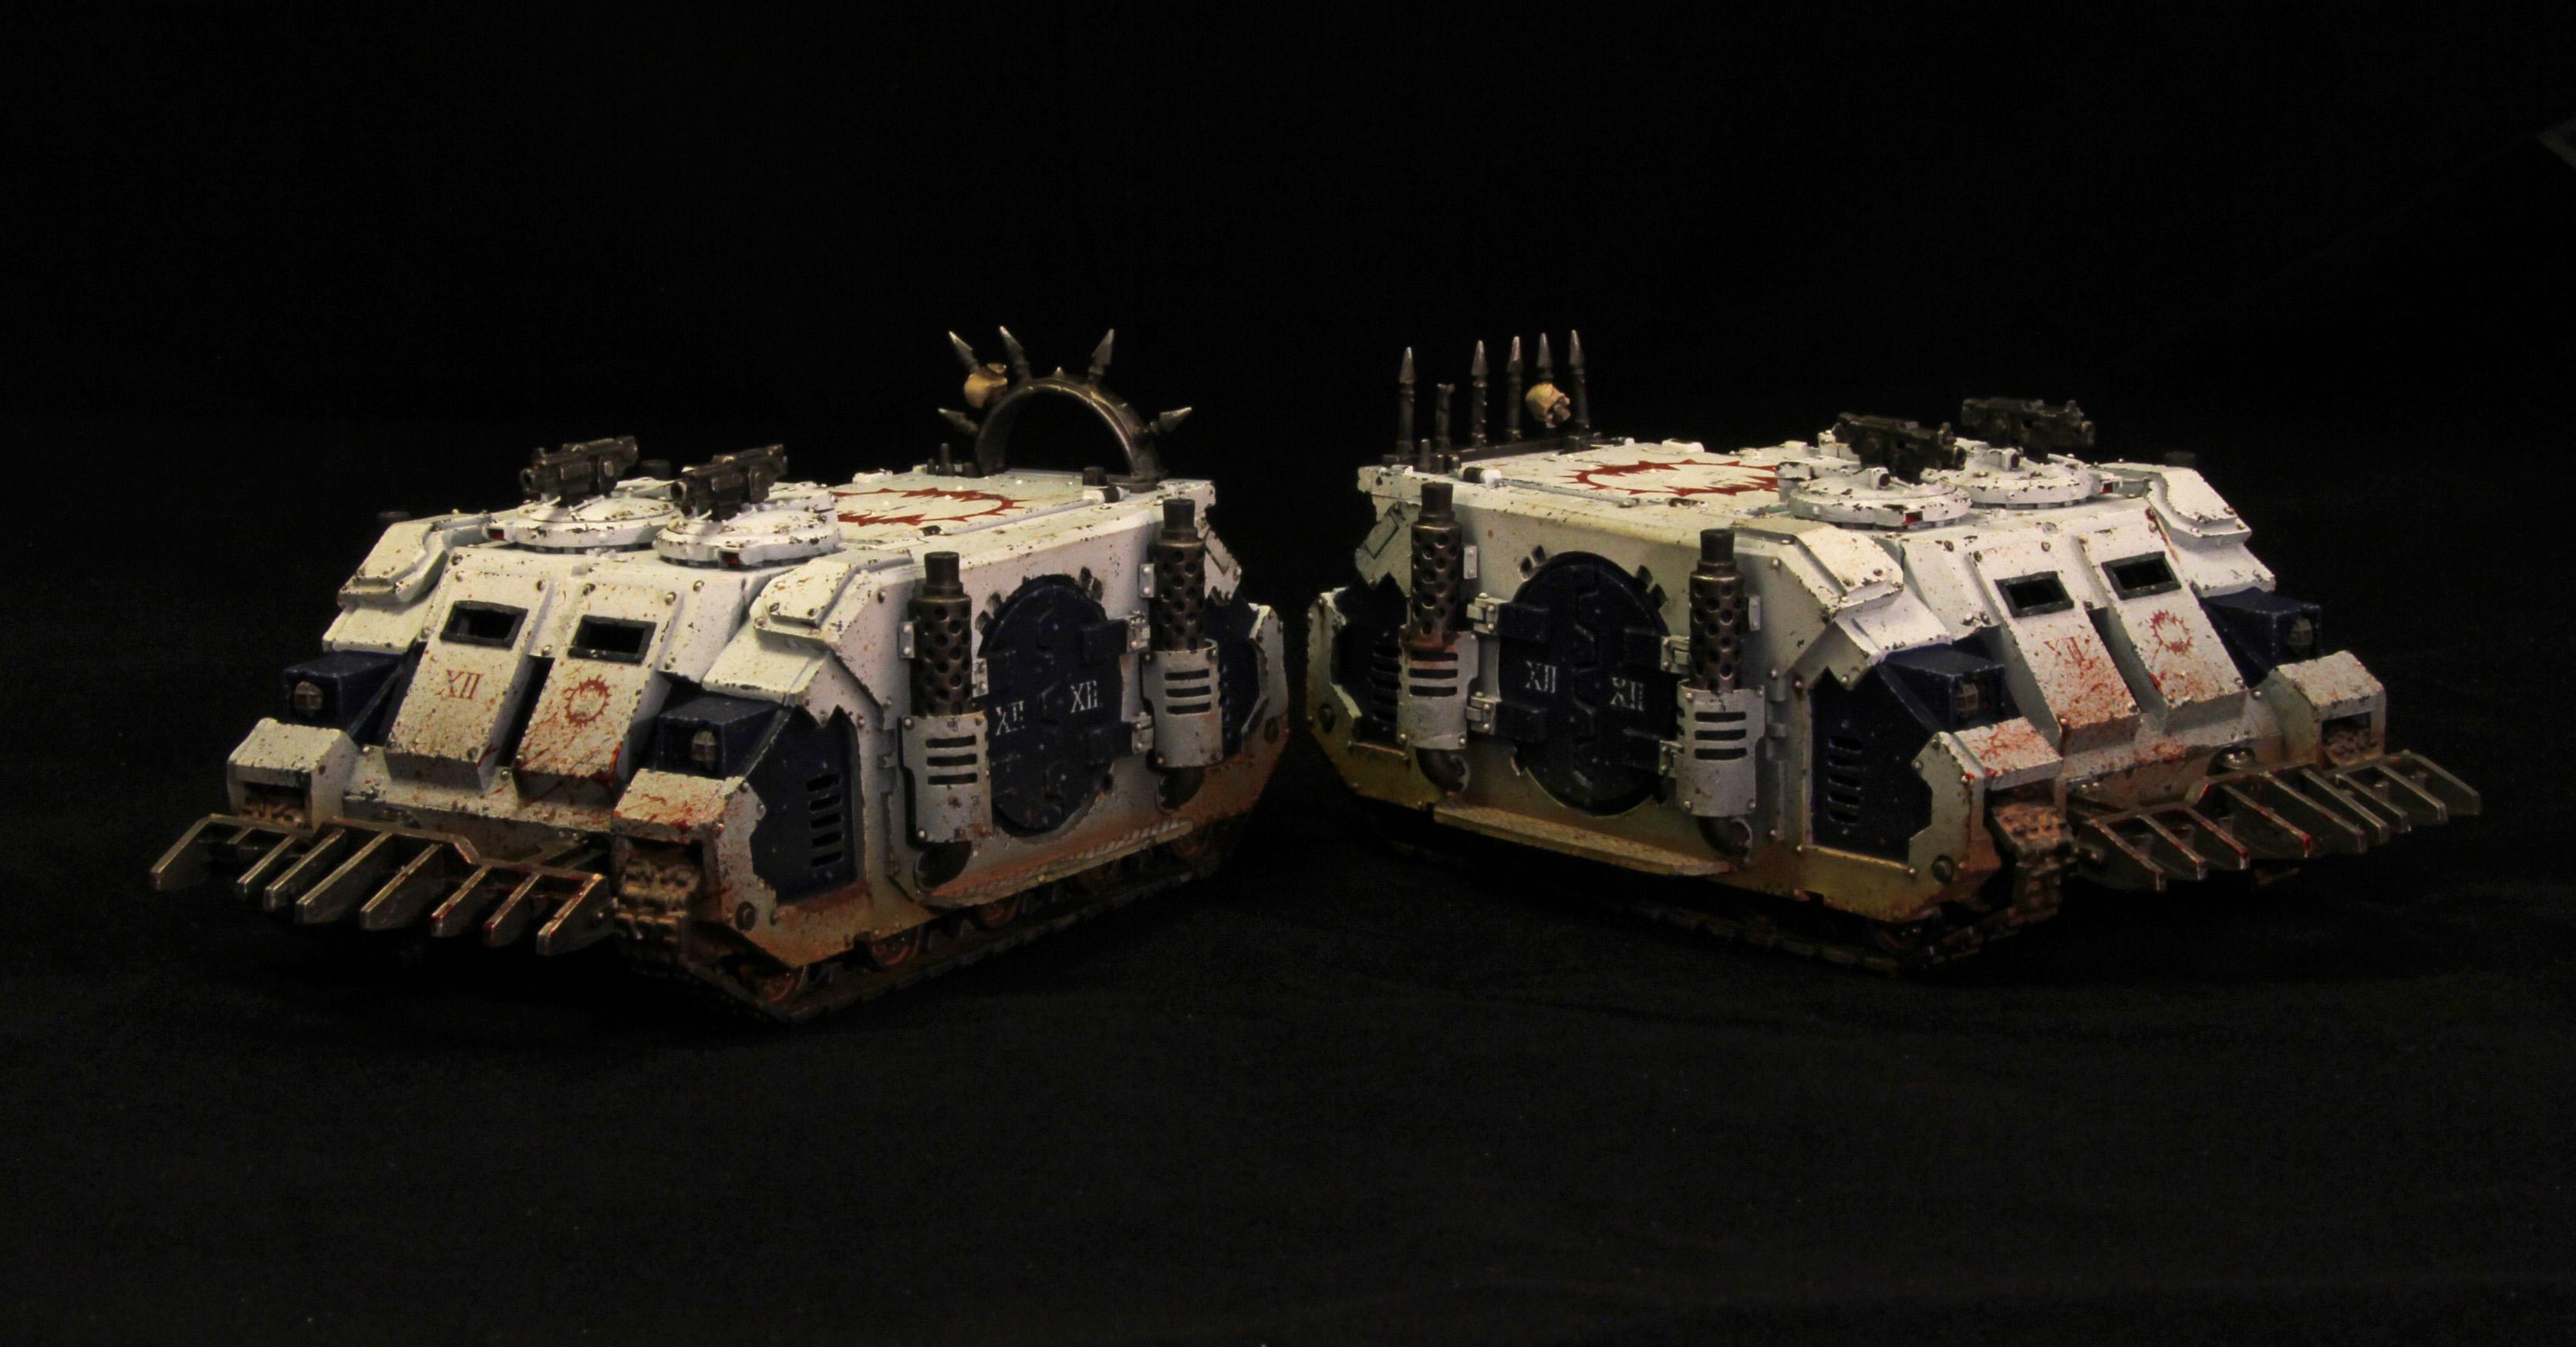 30k, Horus Heresy, Rhino, World Eaters